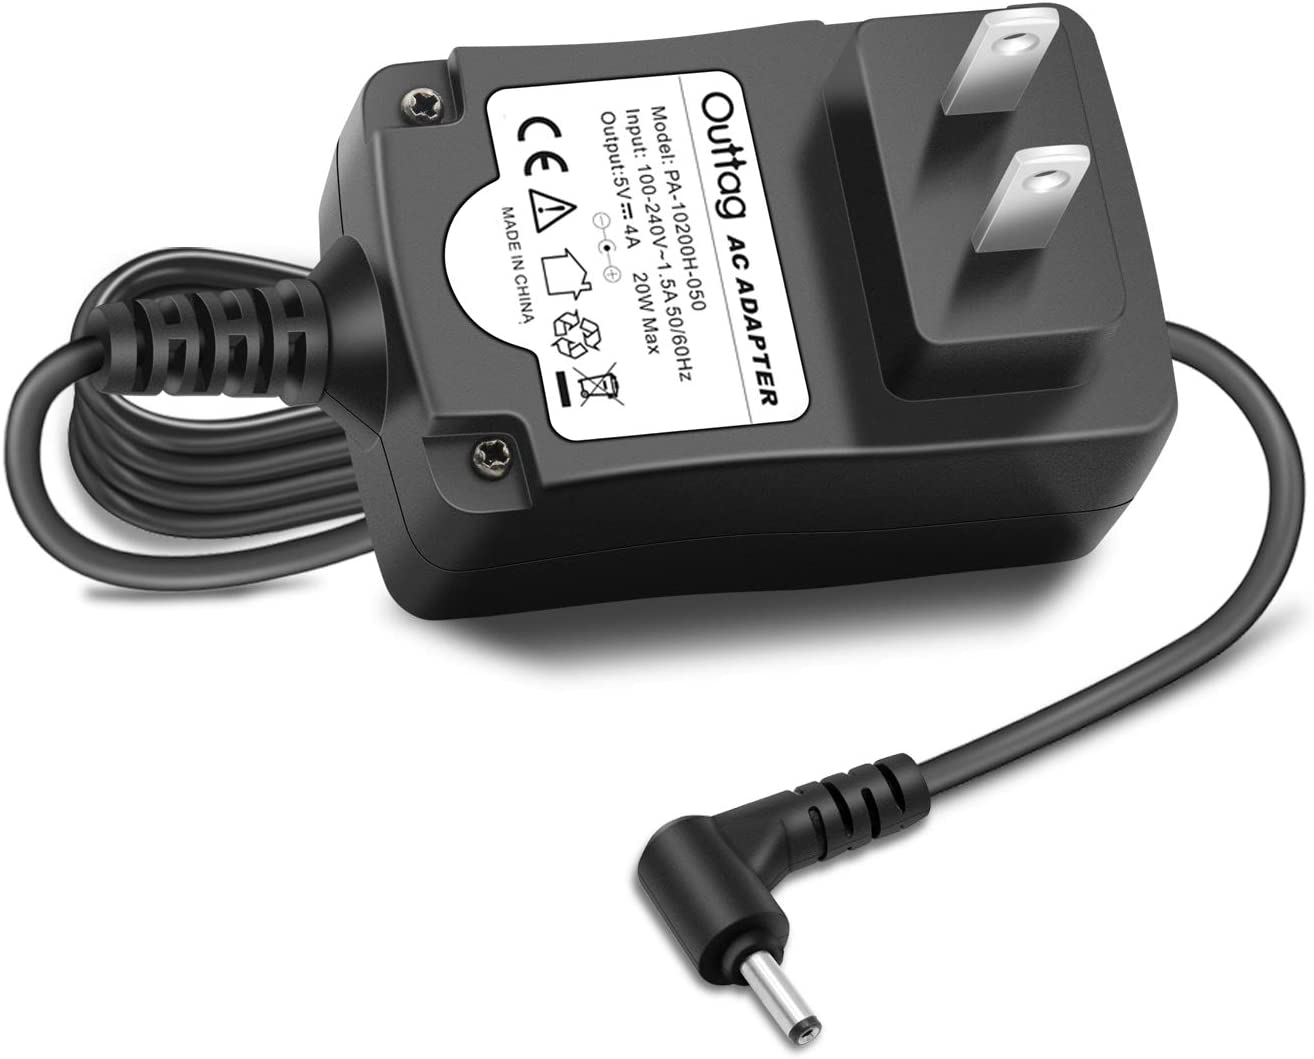 "Outtag 5V 20W Laptop Wall Charger Replacement for Lenovo Ideapad 100S 100S-11IBY 80R2,100S 11.6"" Intel Atom Z3735F;ADS-25SGP-06 05020E GX20K74302 Miix 310-10ICR 80SG001FUS Power AC Adapter Cord"